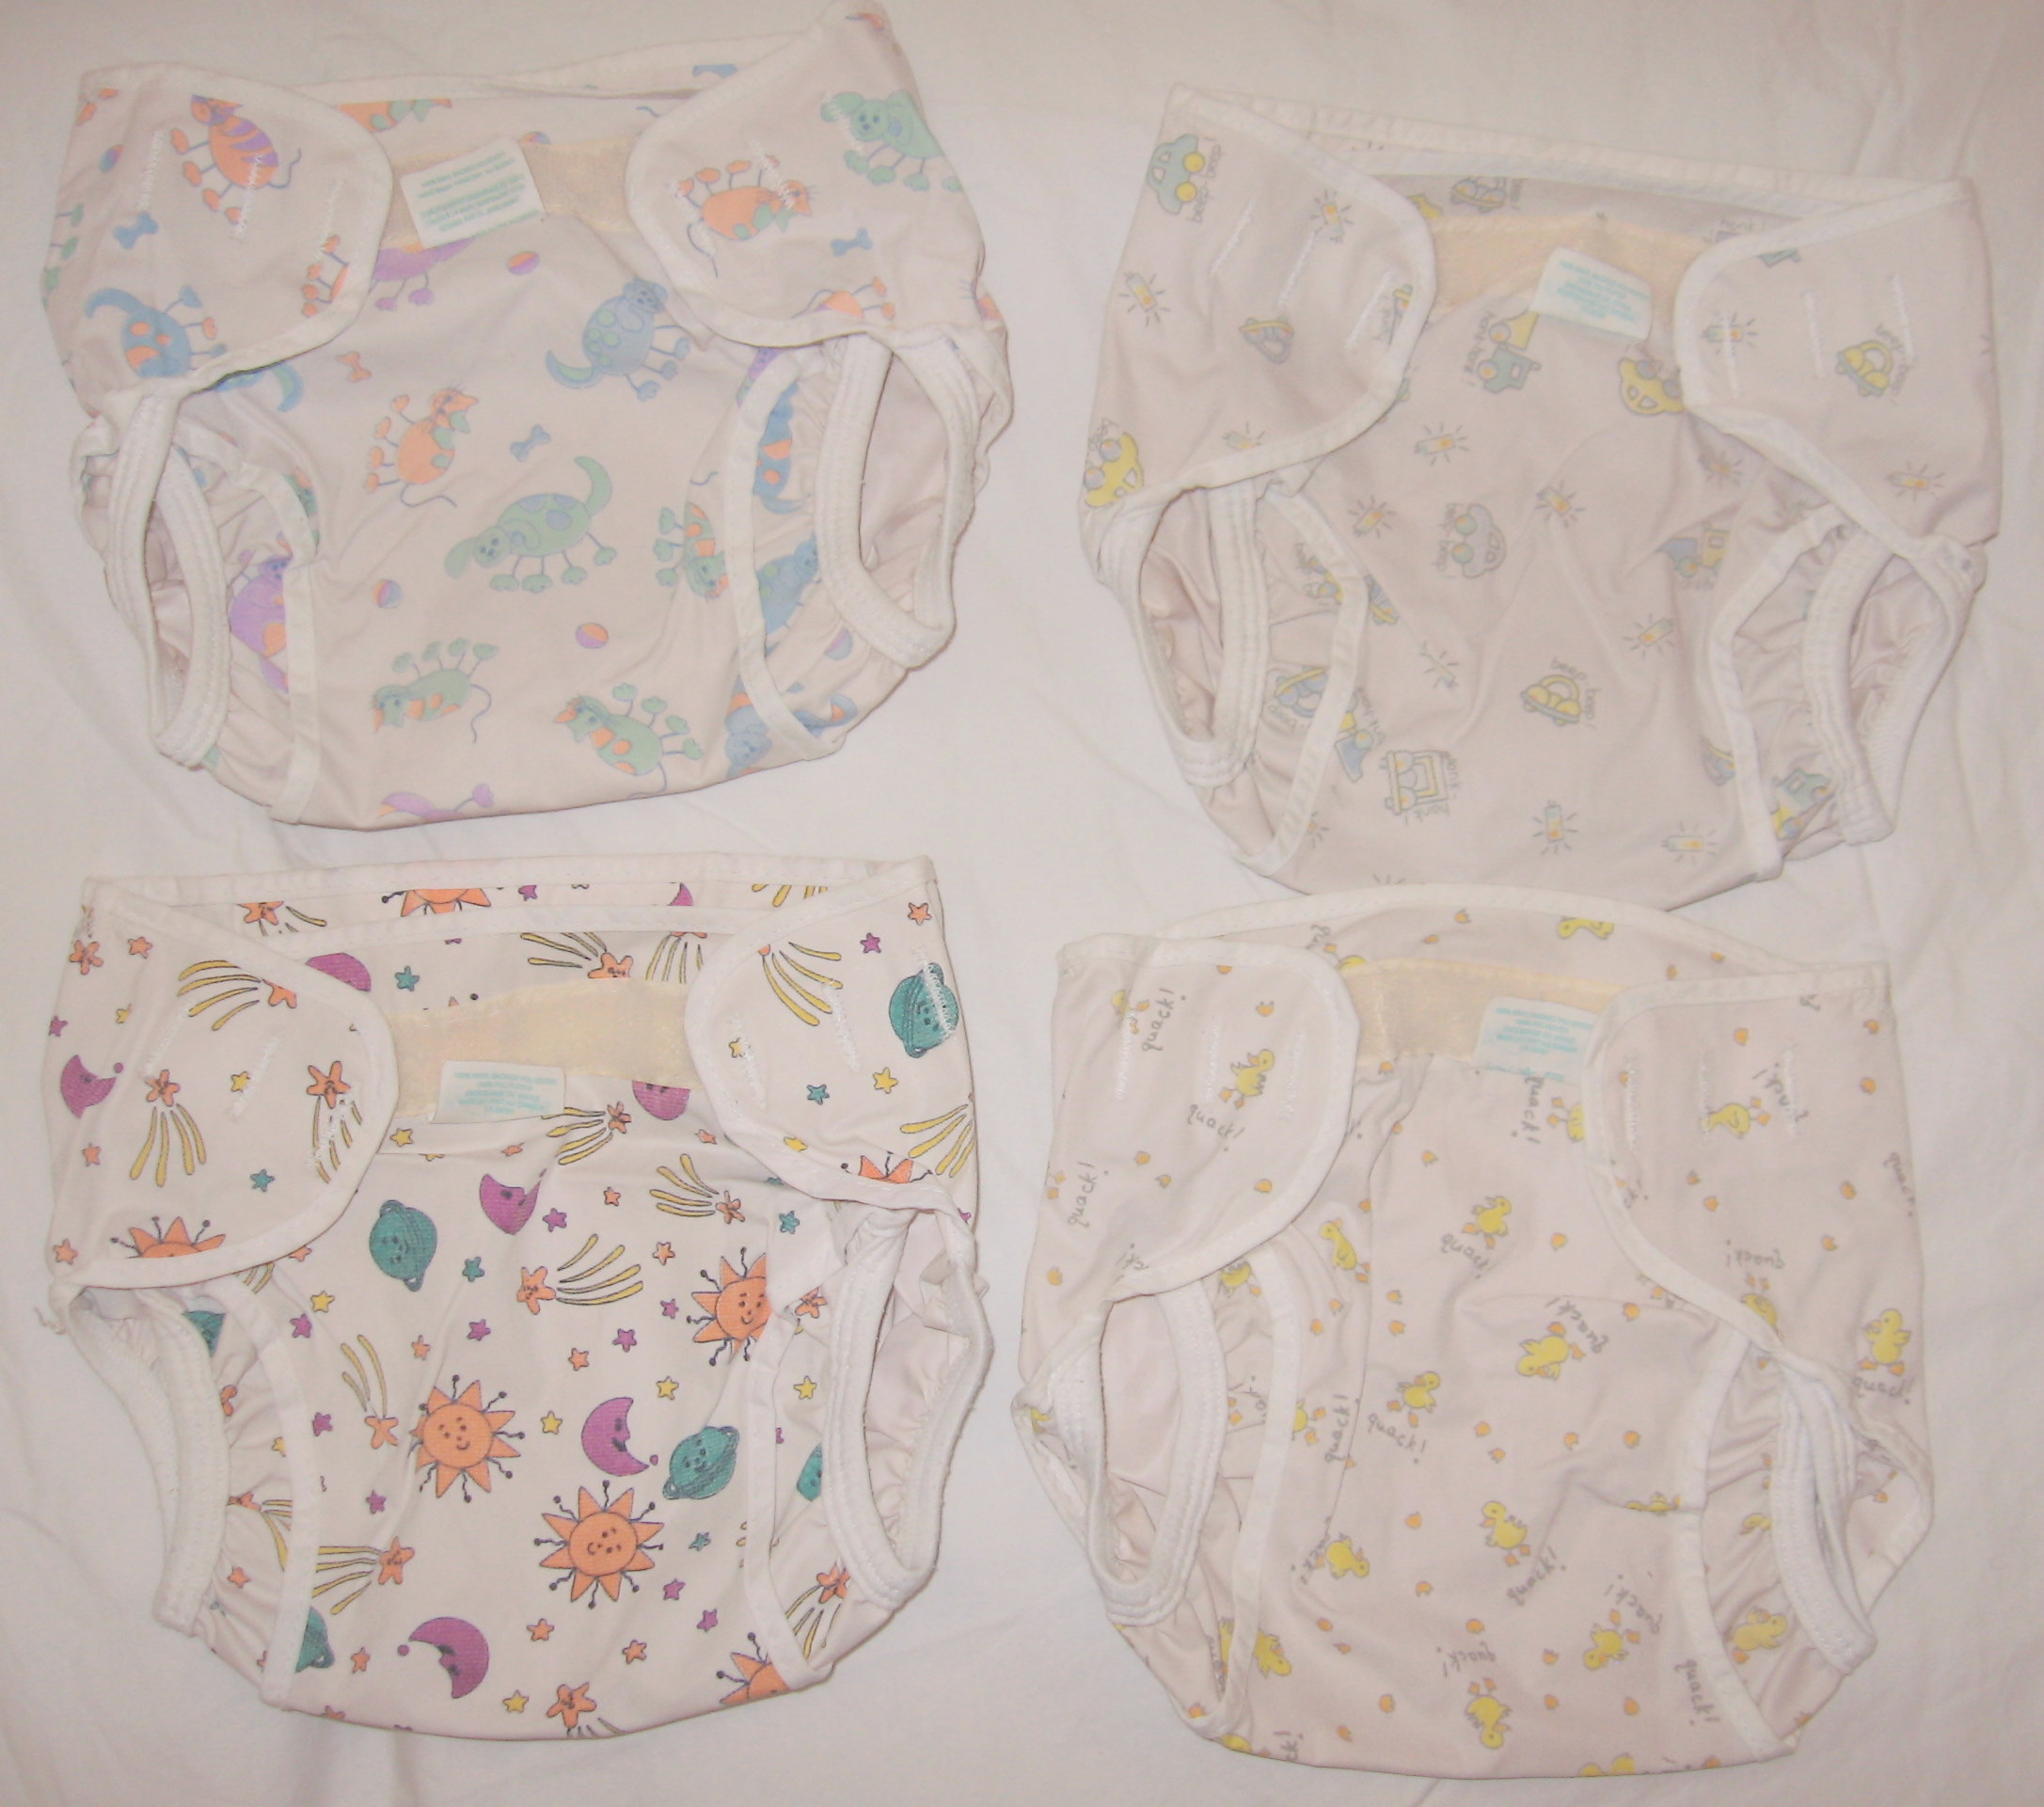 080608 Lot of 4 Cloth Diaper Covers Kooshies Kushies Size Infant 10-22 lb.JPG